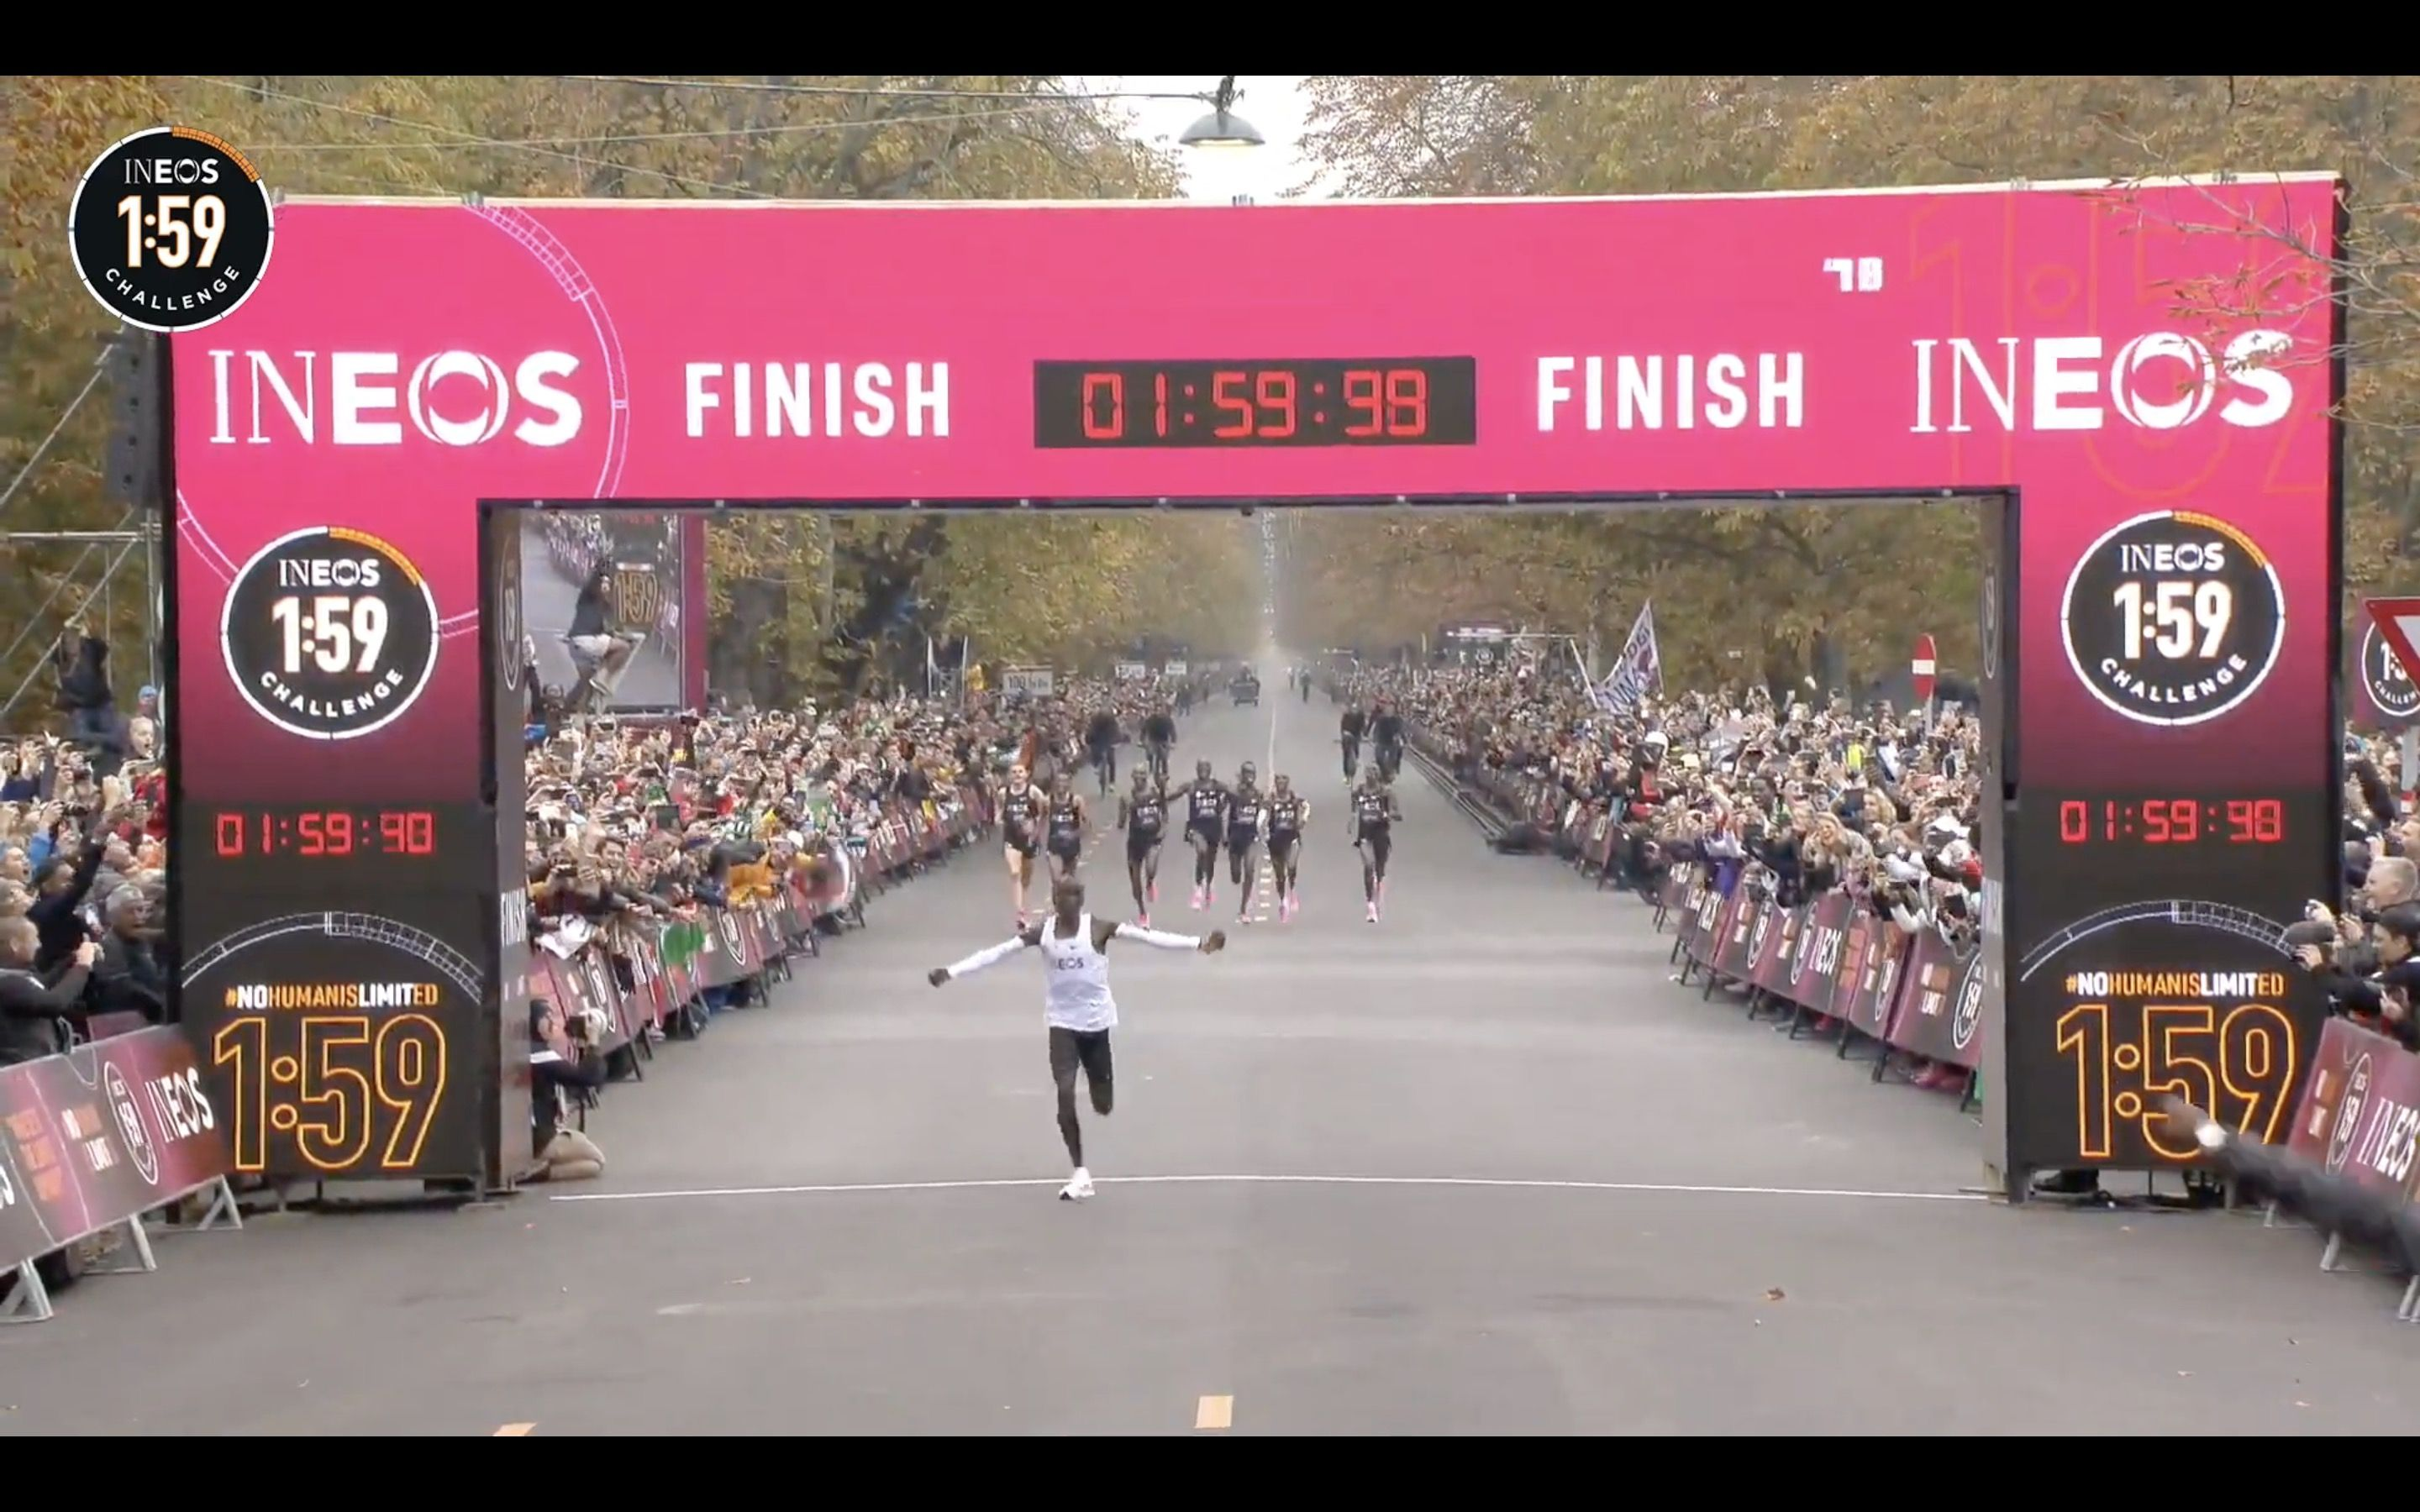 Kipchoge becomes the first man in the world to run a sub-2 marathon